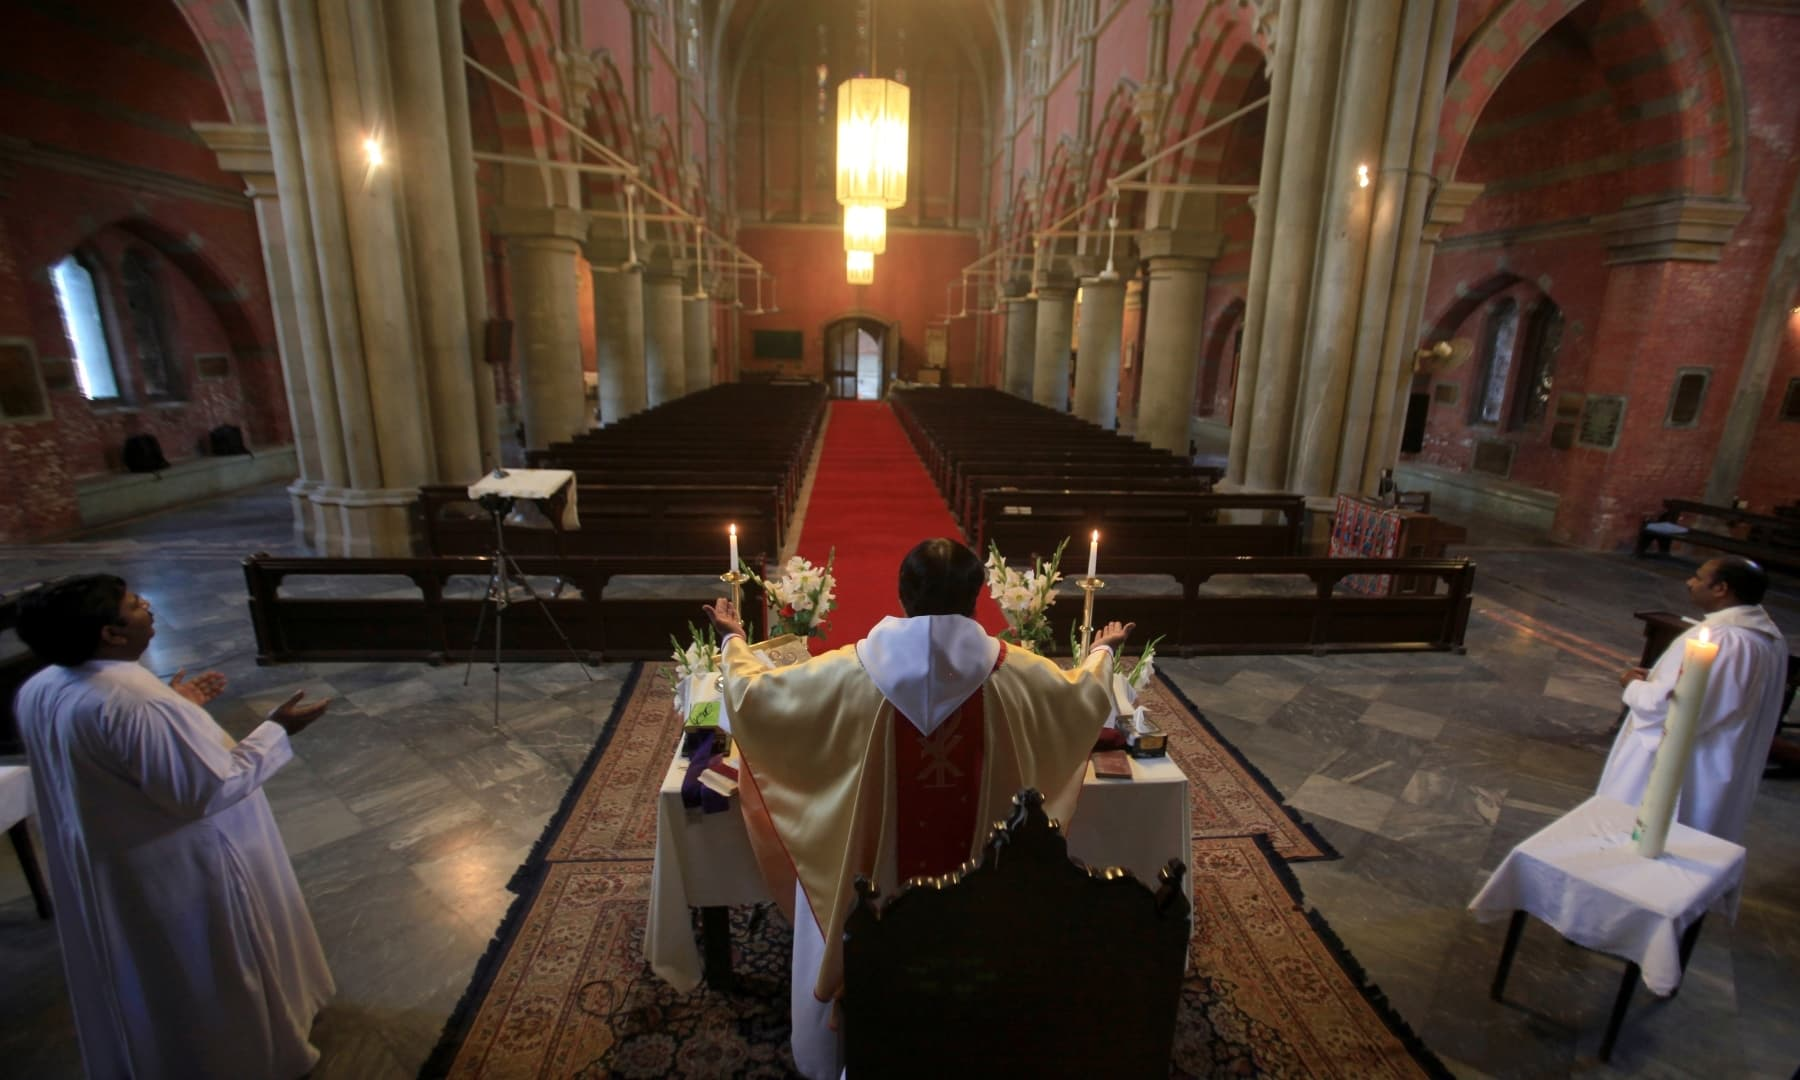 Reverend Shahid Mehraj Dean leads an online Easter prayer in front of empty seats at the Cathedral Church of the Resurrection in Lahore on April 12. — Reuters